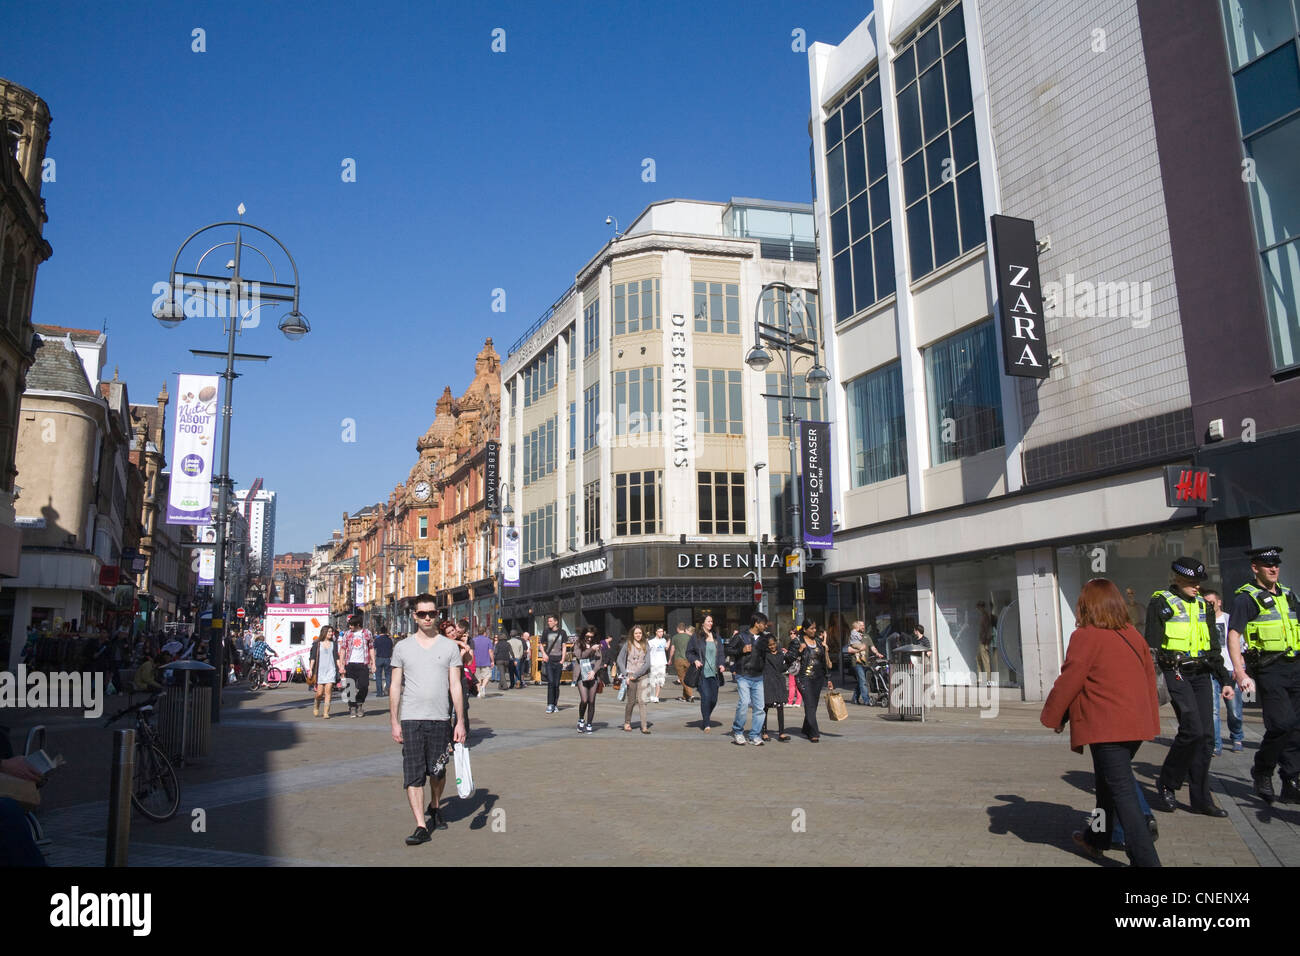 Leeds West Yorkshire England Looking along Briggate a busy city centre shopping street - Stock Image